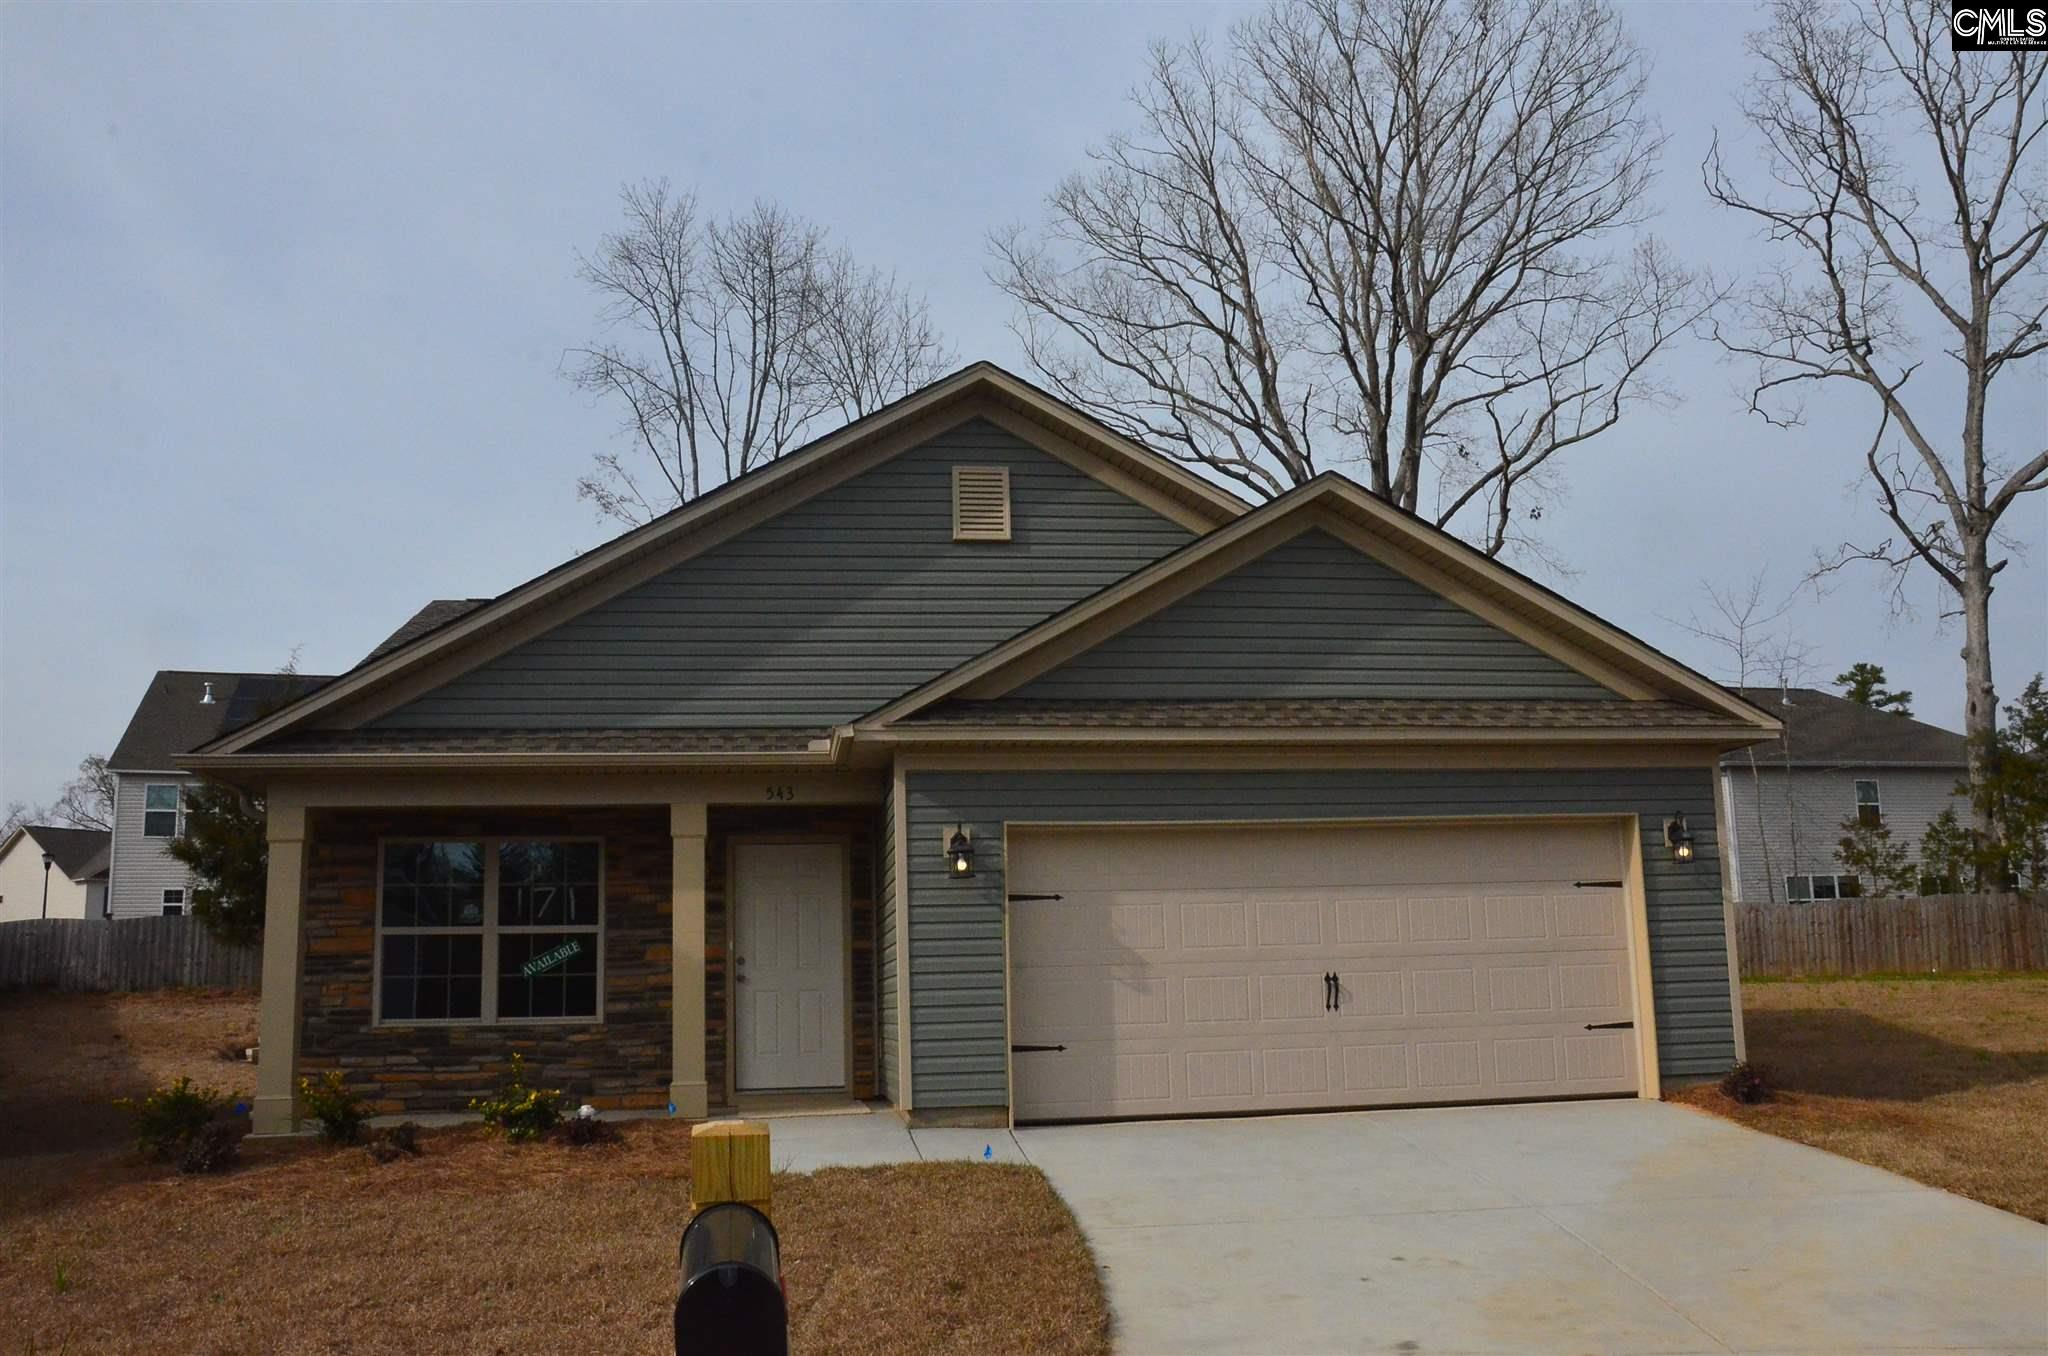 543 Connecticut Chapin, SC 29036